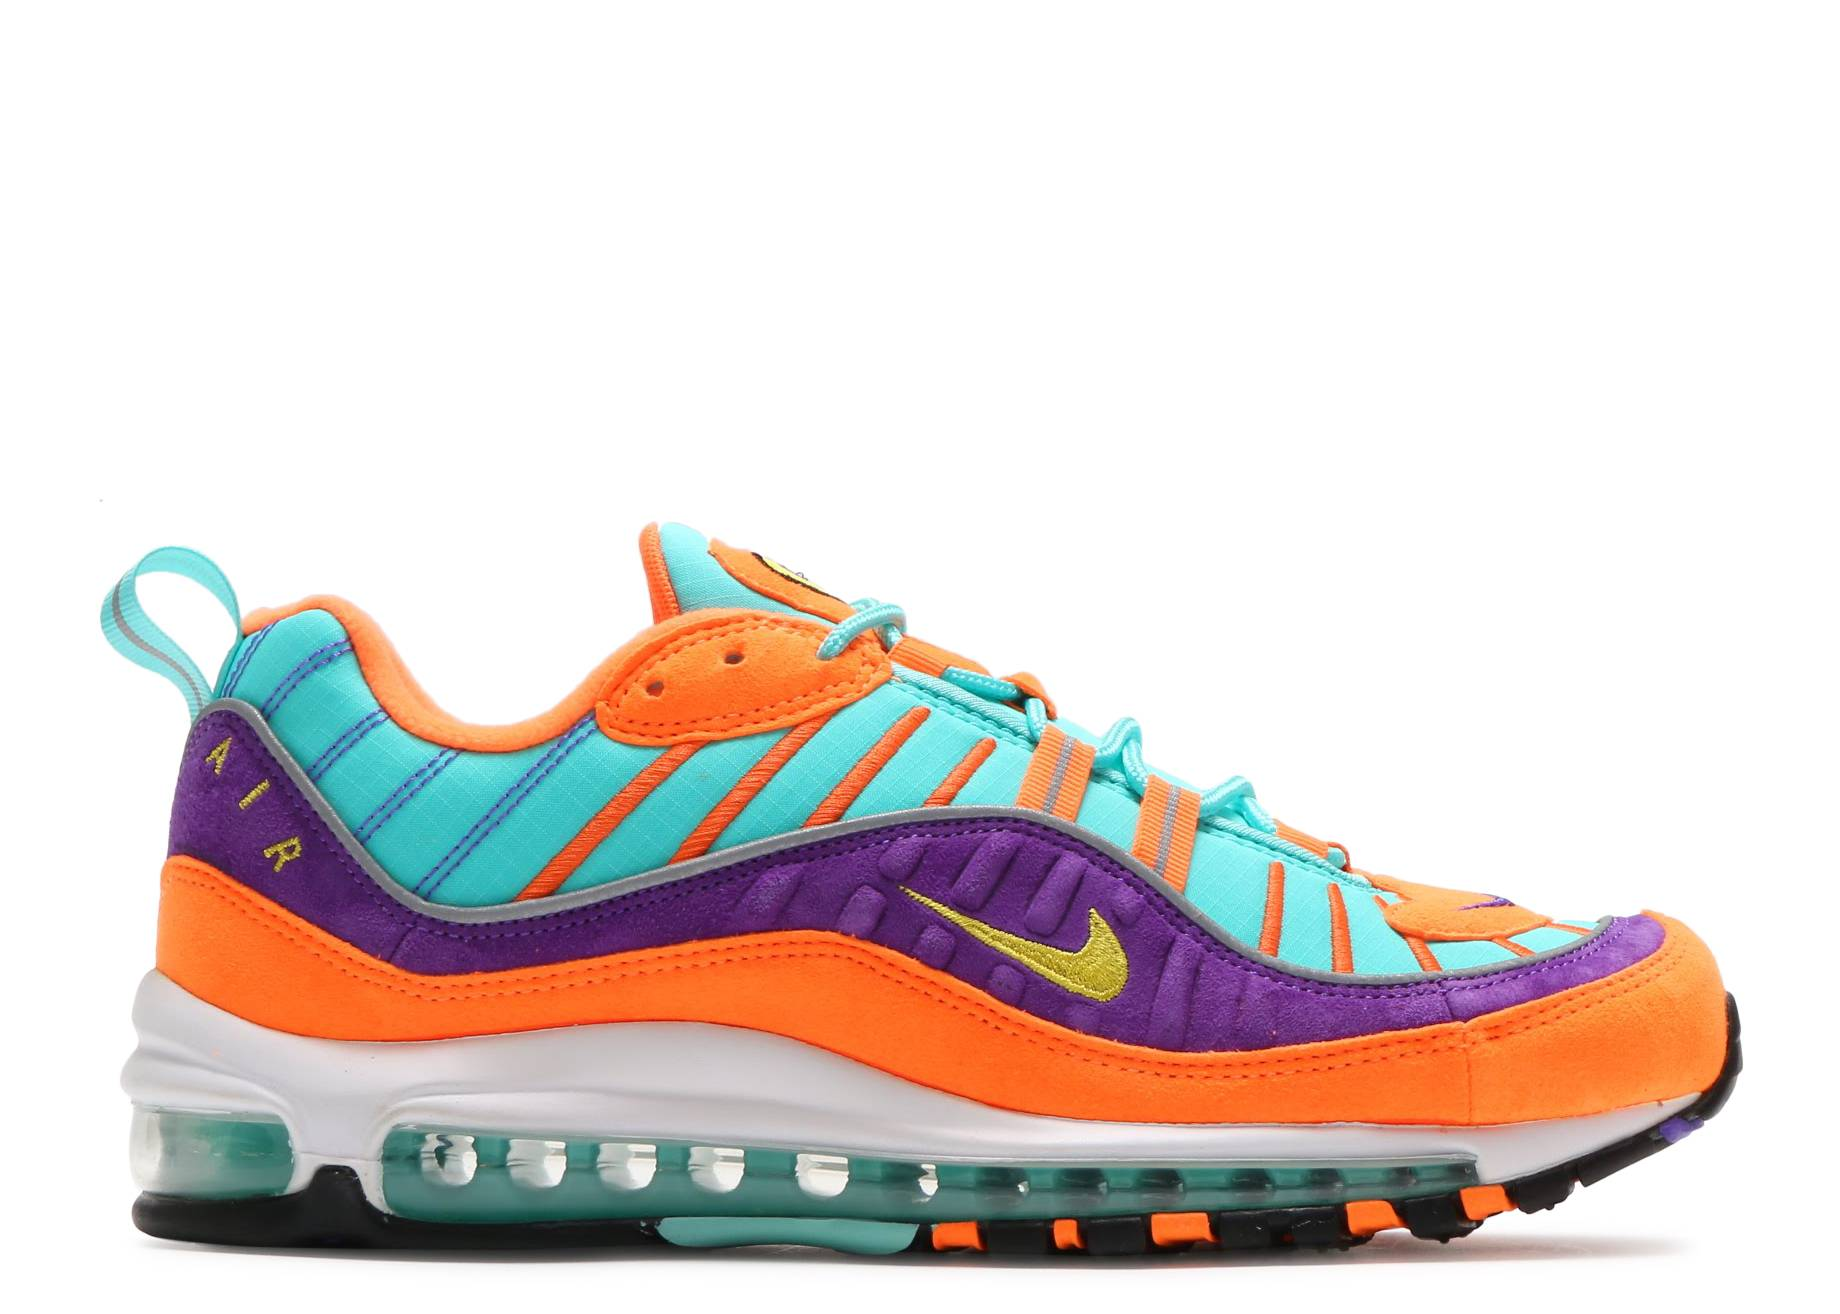 new style 9f491 033b7 AIR MAX 98 QS - Nike - 924462 800 - cone tour yellow-hyper grape ...